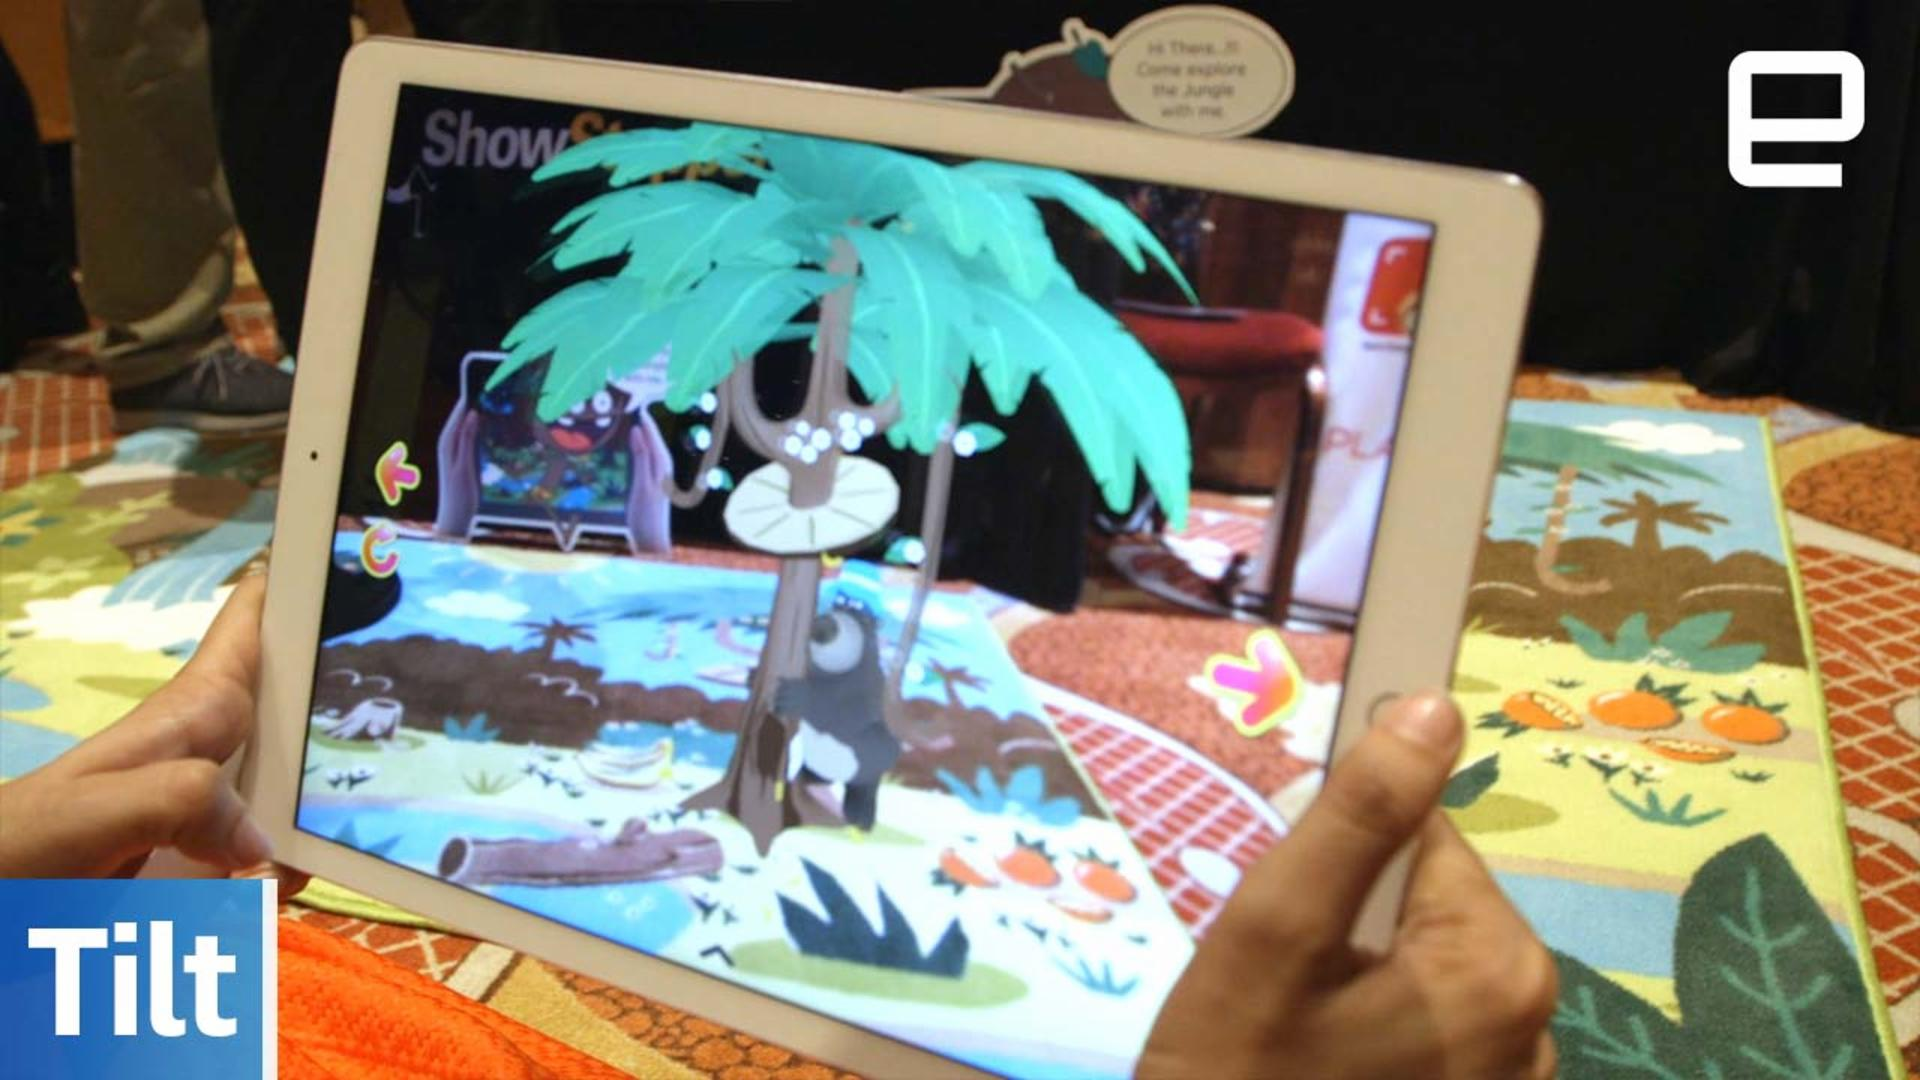 Tilt tells augmented reality stories to kids with a rug and duvet